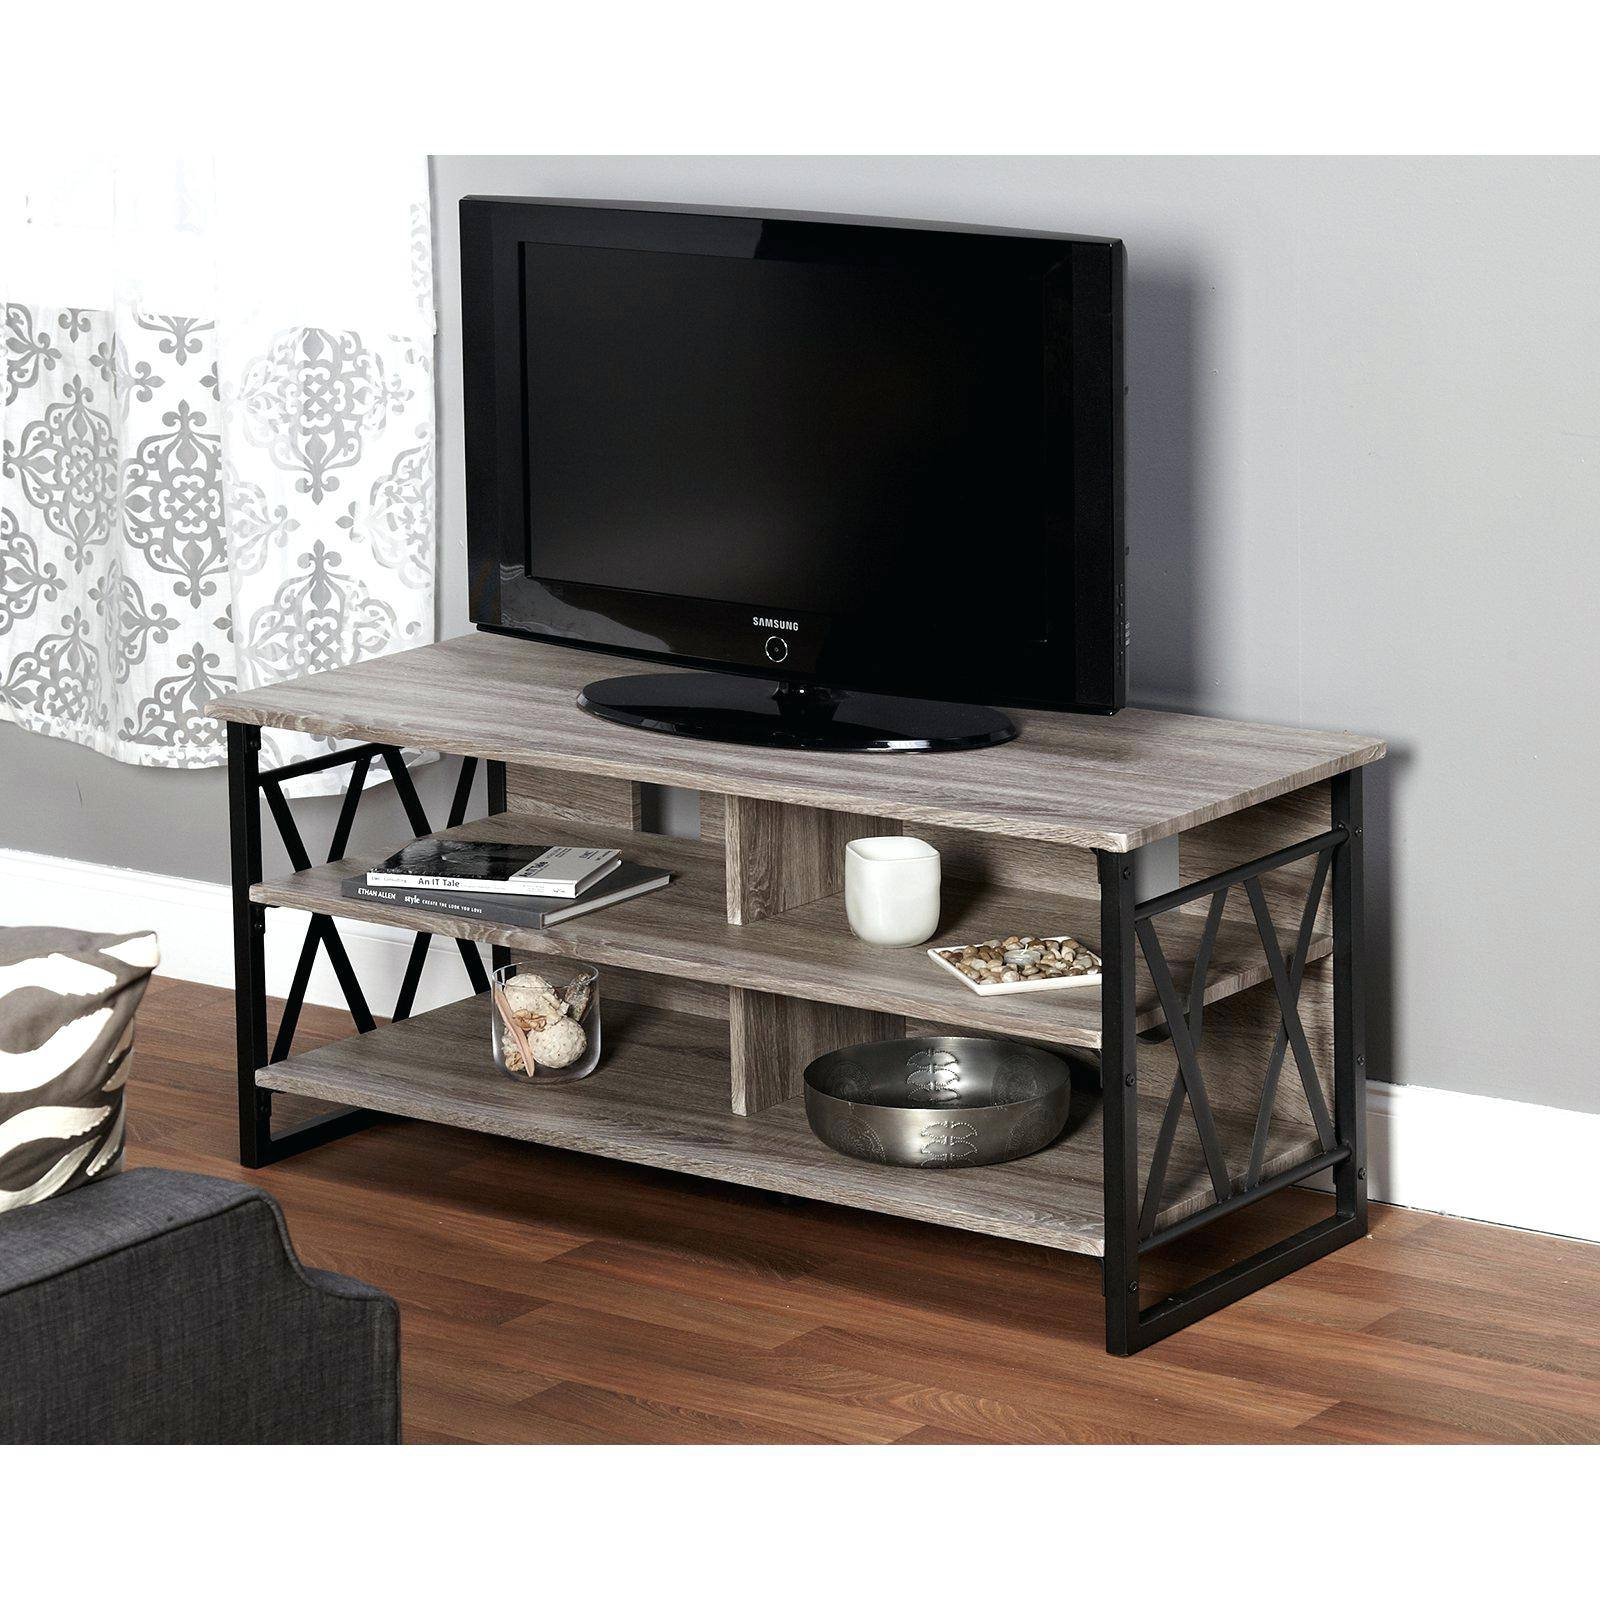 Tv Stand : Amazing Techlink Echo Tv Stand Techlink Echo Tv Stand pertaining to Ovid White Tv Stand (Image 7 of 15)